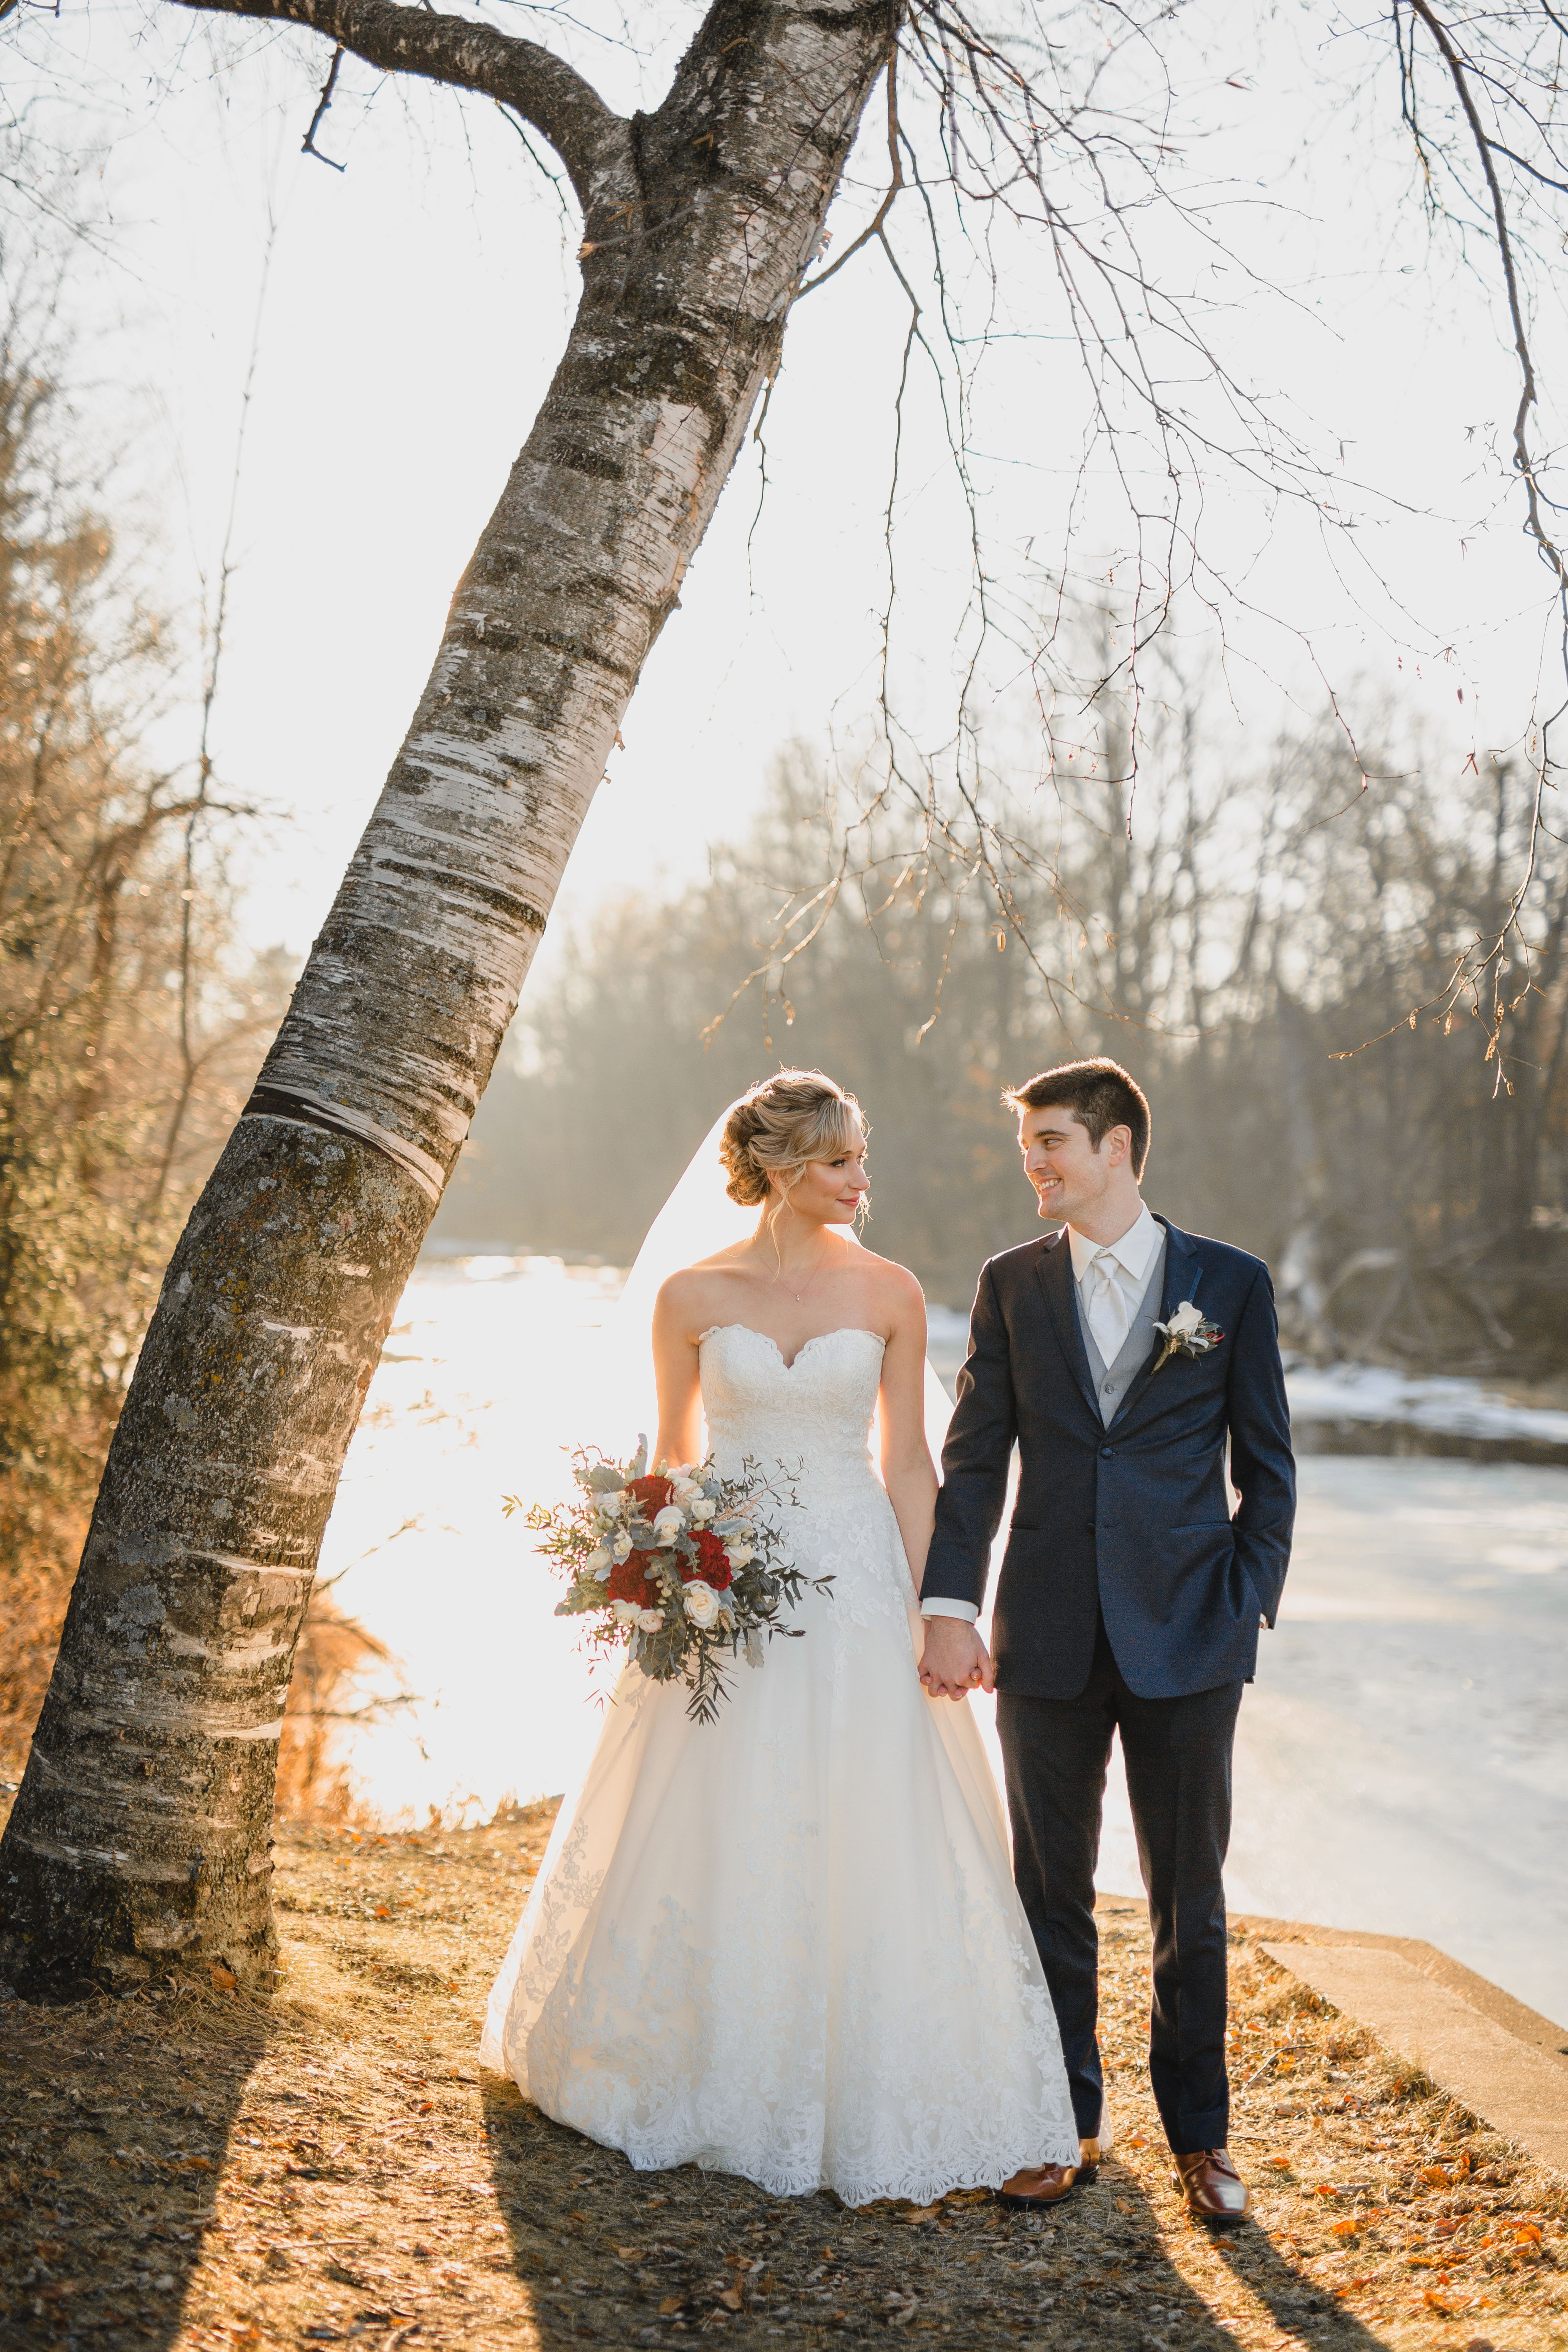 Winter Weddings In Wisconsin Can Be Really Cold But These Two Made It A Lot Warmer It Was Still Pretty Cold Though Br With Images Bride Groom Bride Wisconsin Wedding